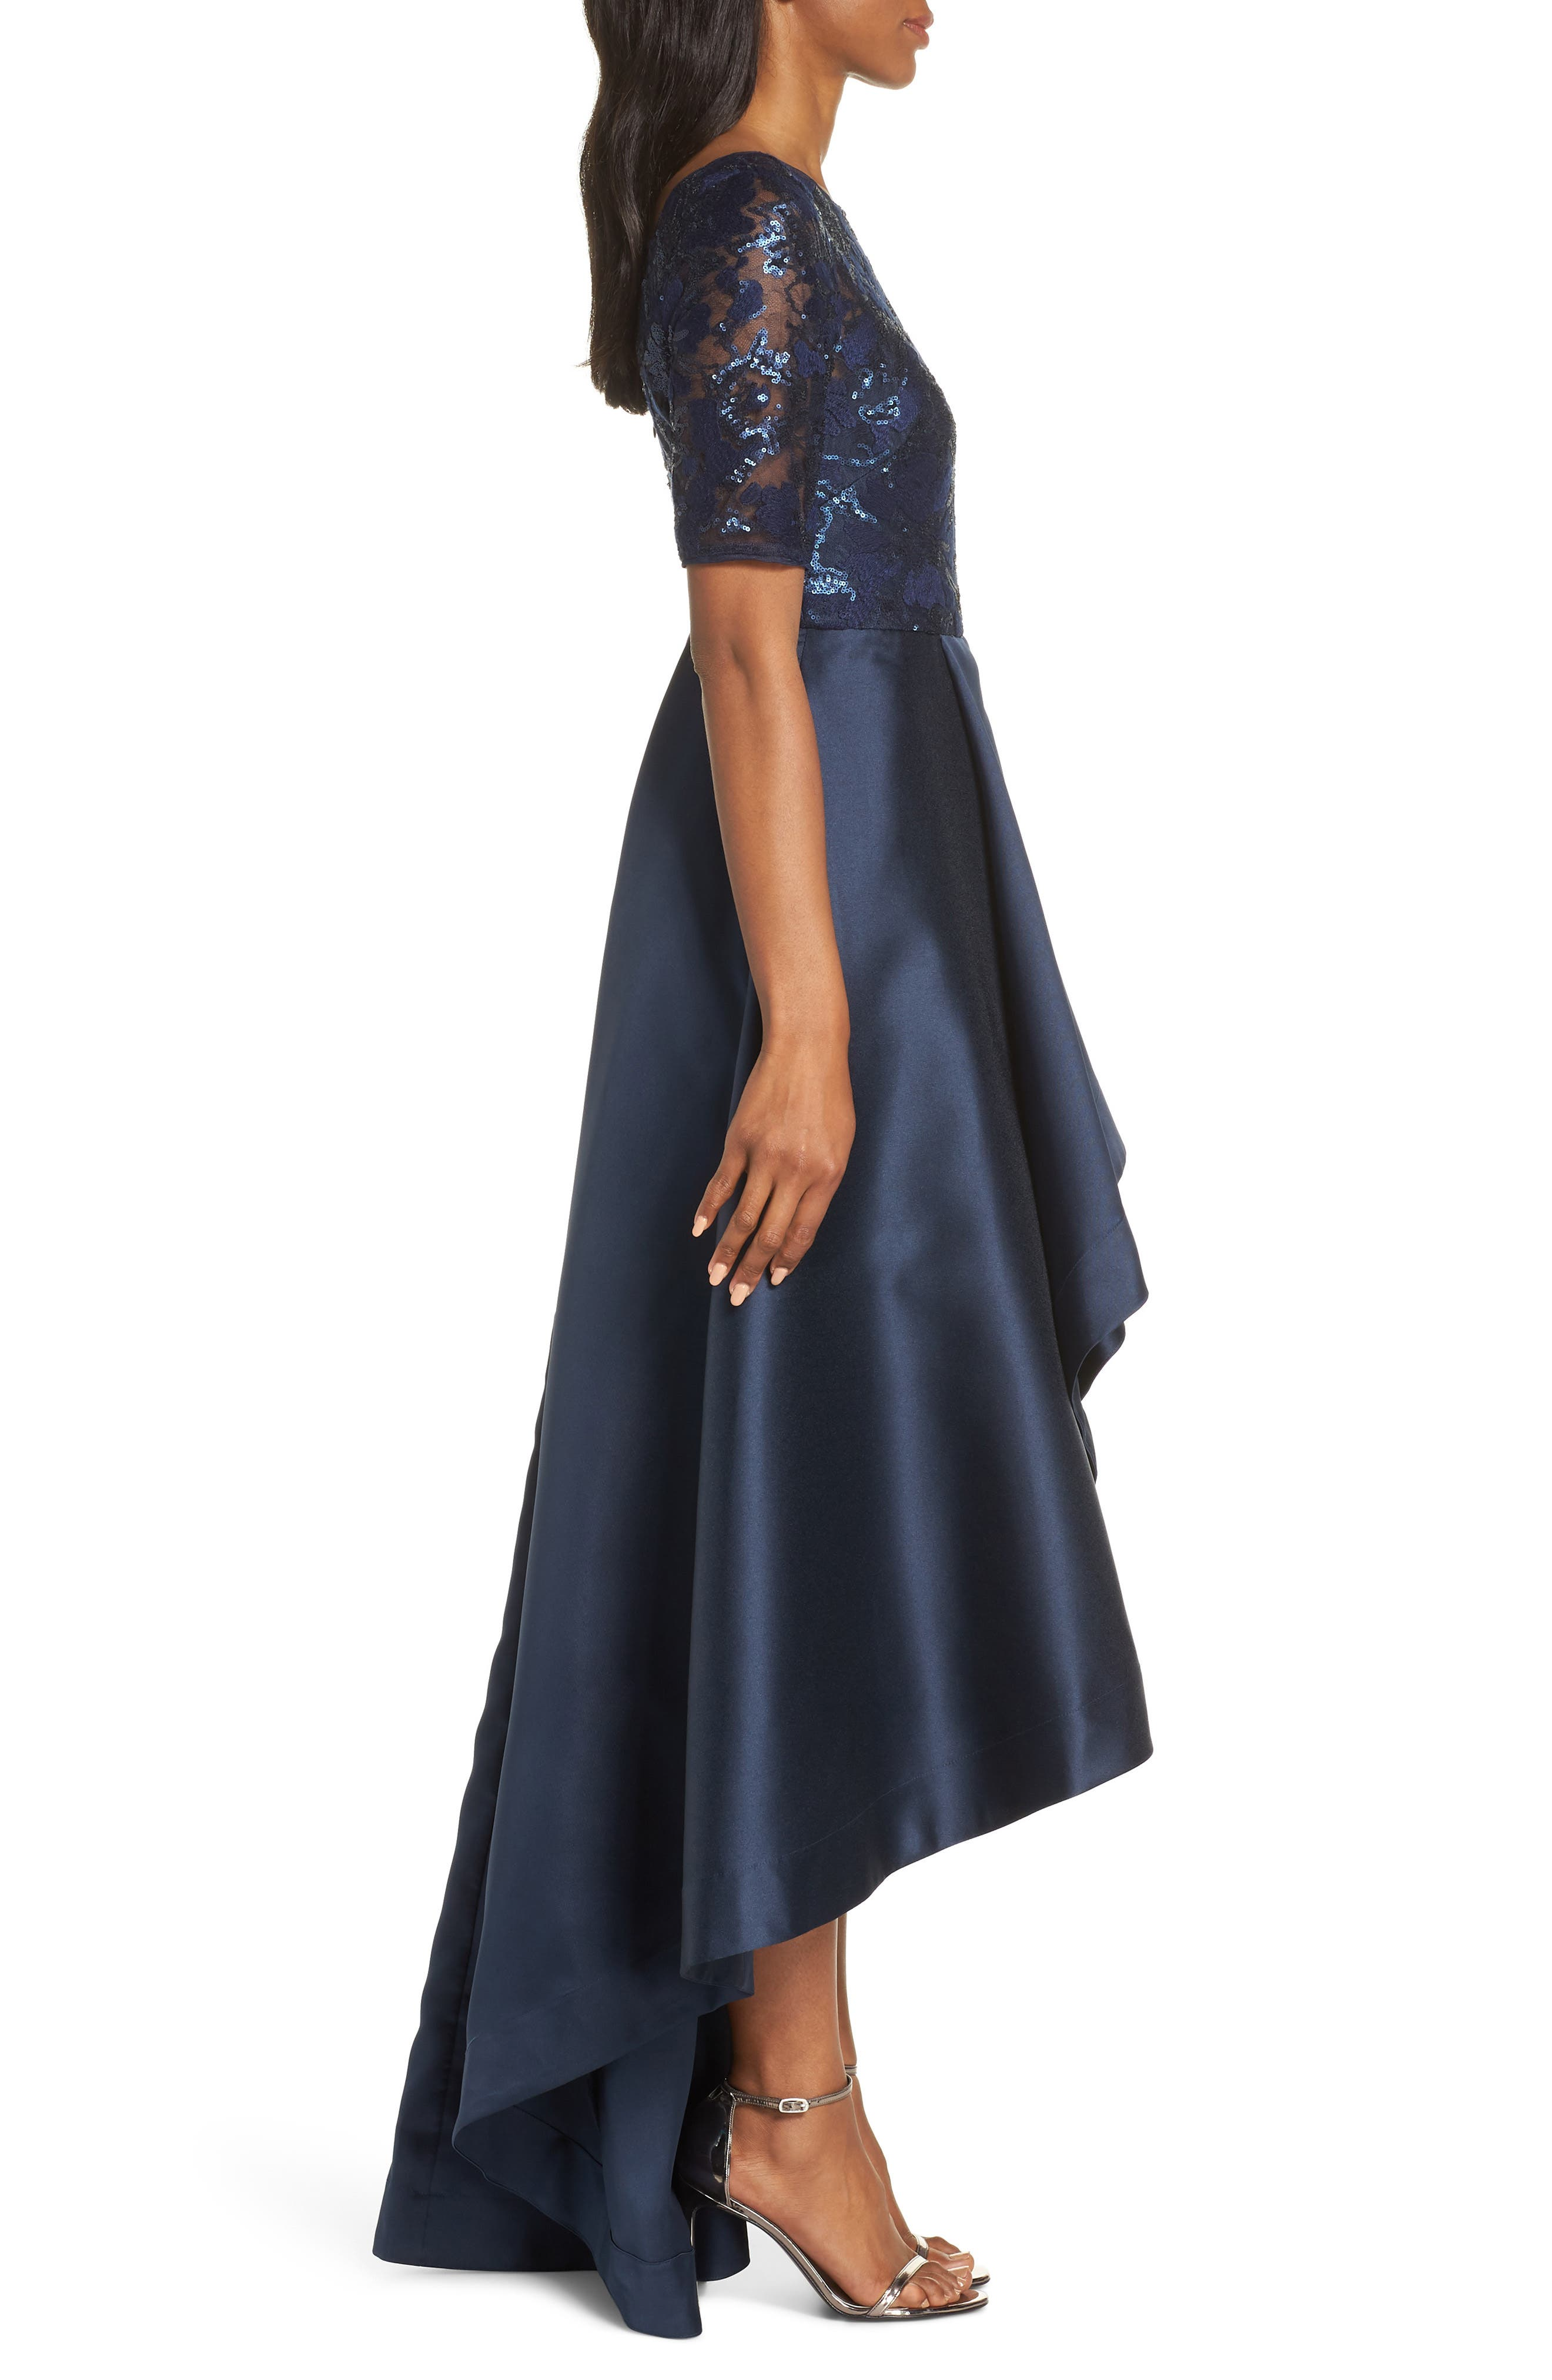 ADRIANNA PAPELL, Sequin Lace High/Low Evening Dress, Alternate thumbnail 4, color, MIDNIGHT